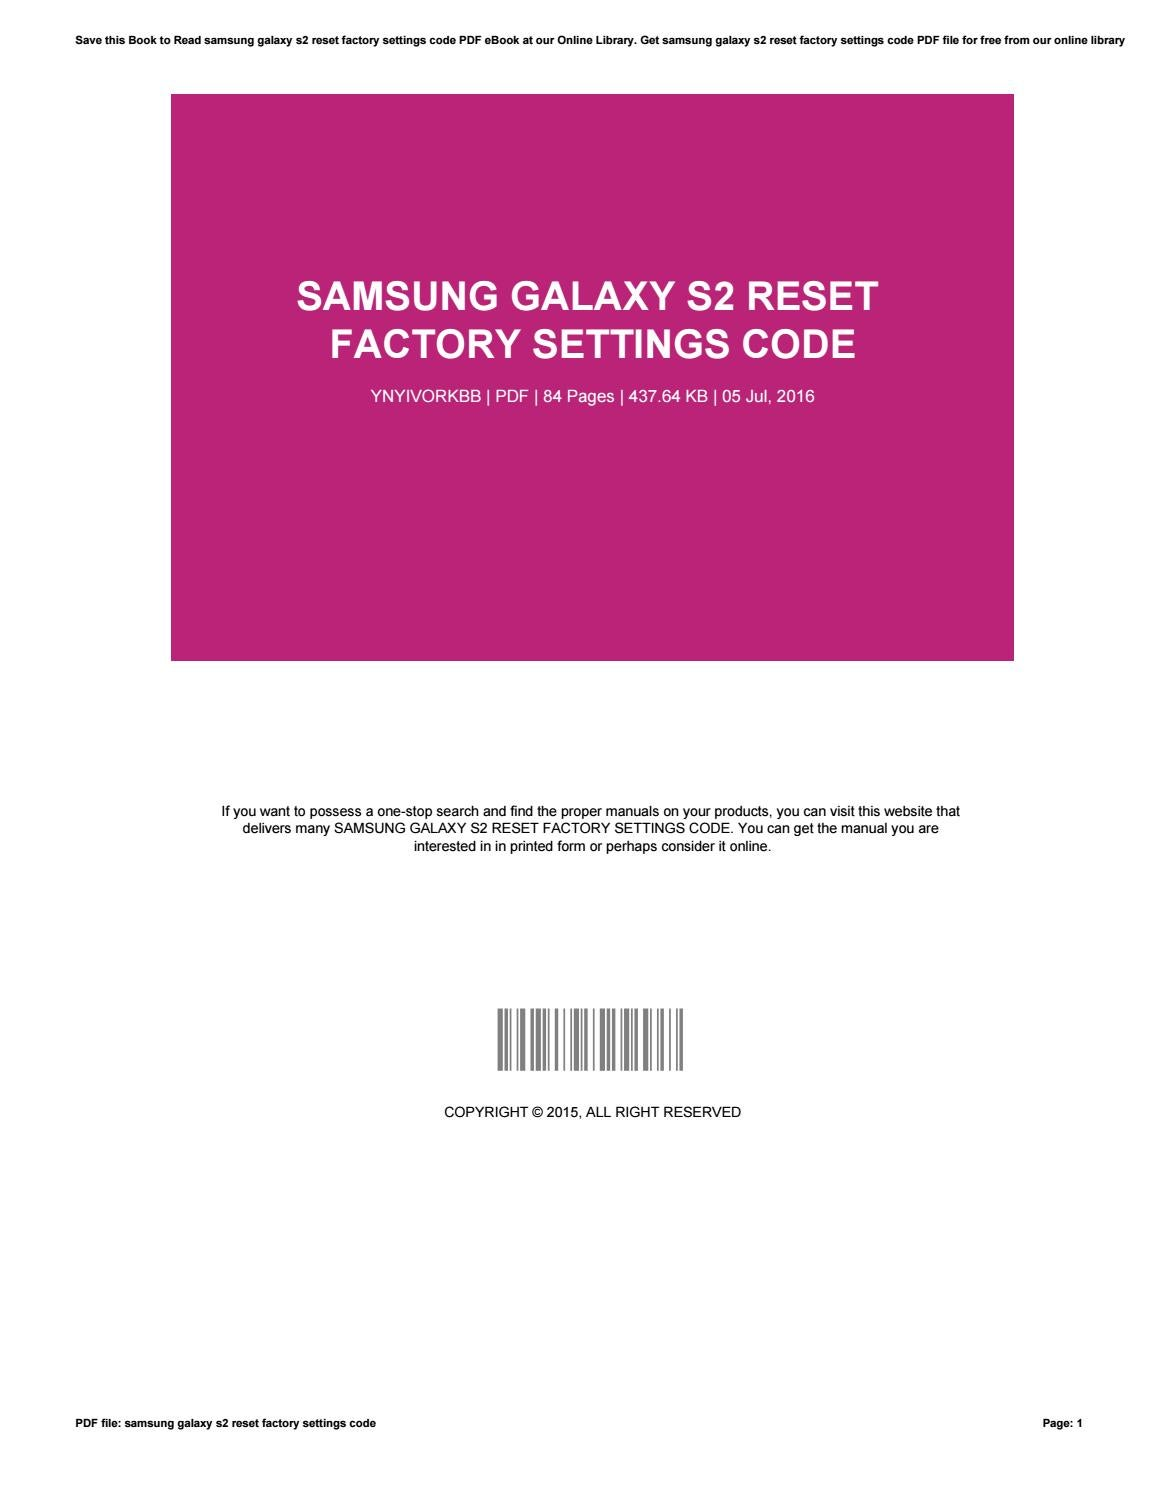 Samsung galaxy s2 reset factory settings code by successlocation94 - issuu